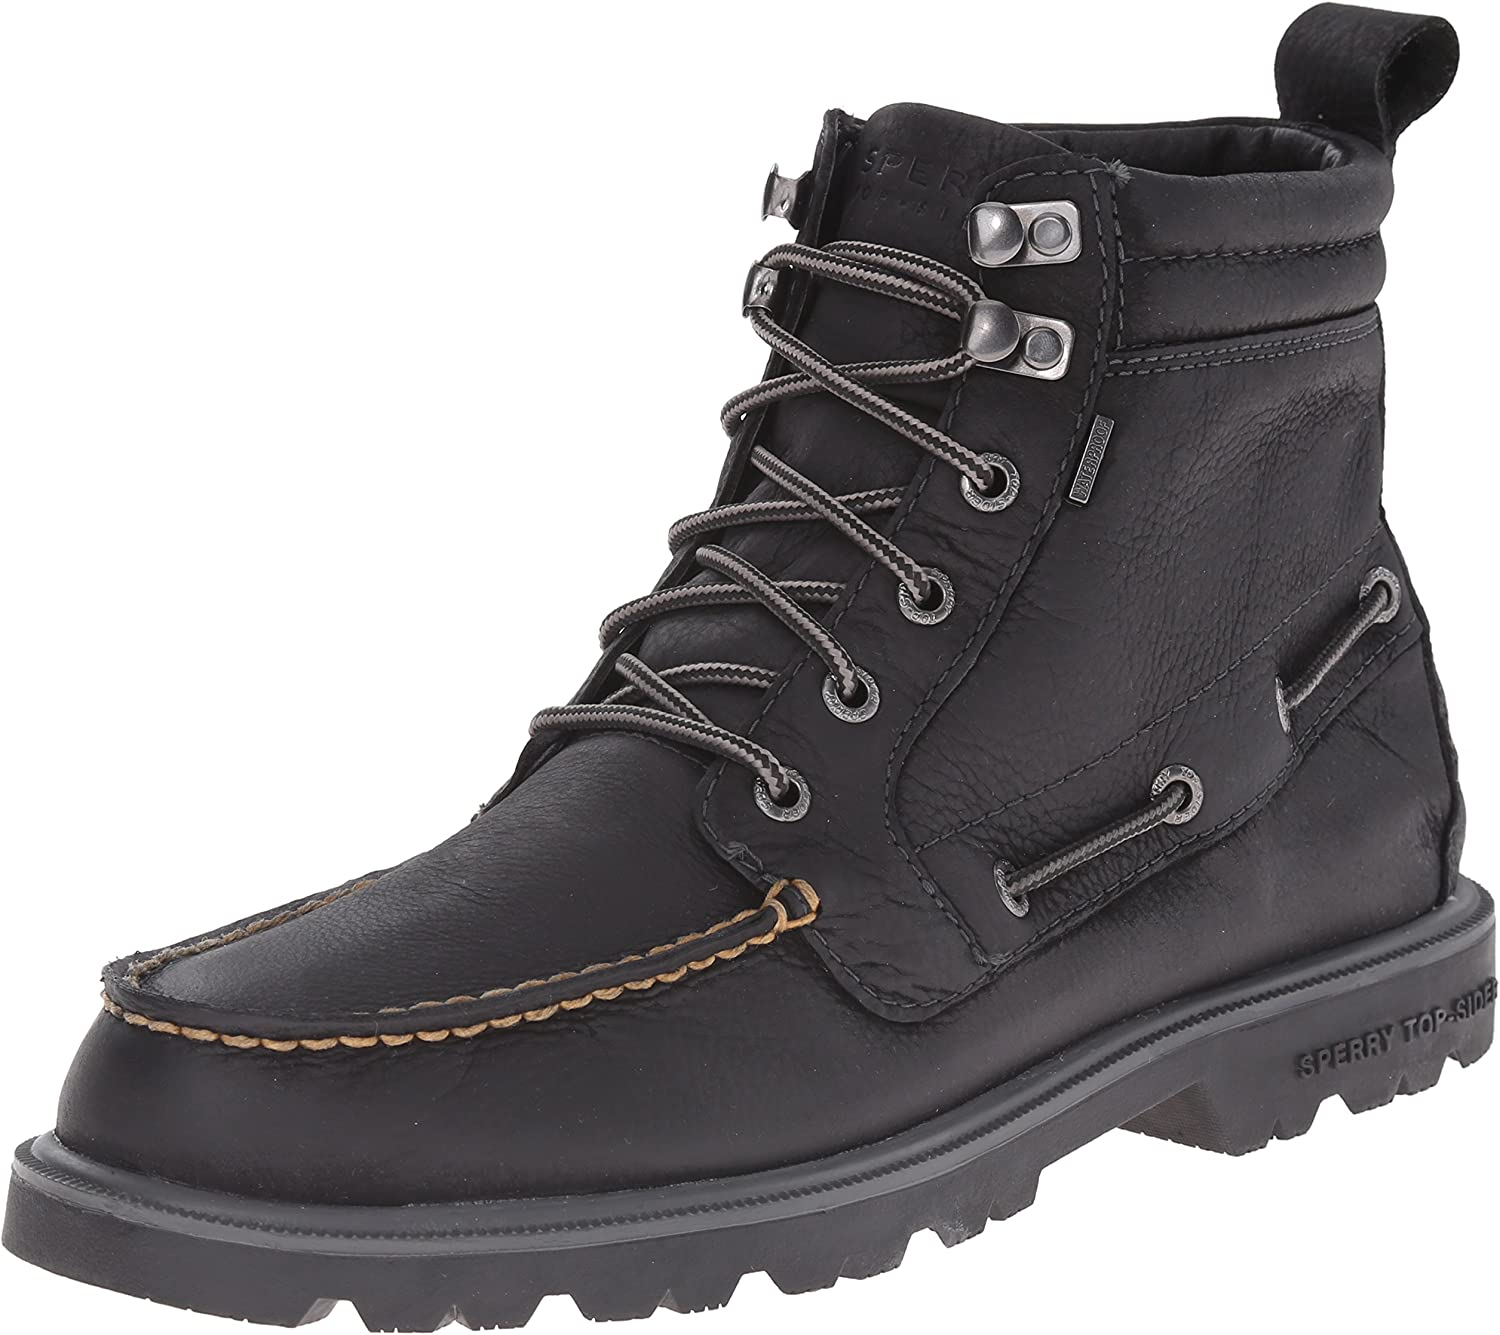 Sperry Top-Sider Men's Authentic Original Lug Boot WP Winter Boot Black